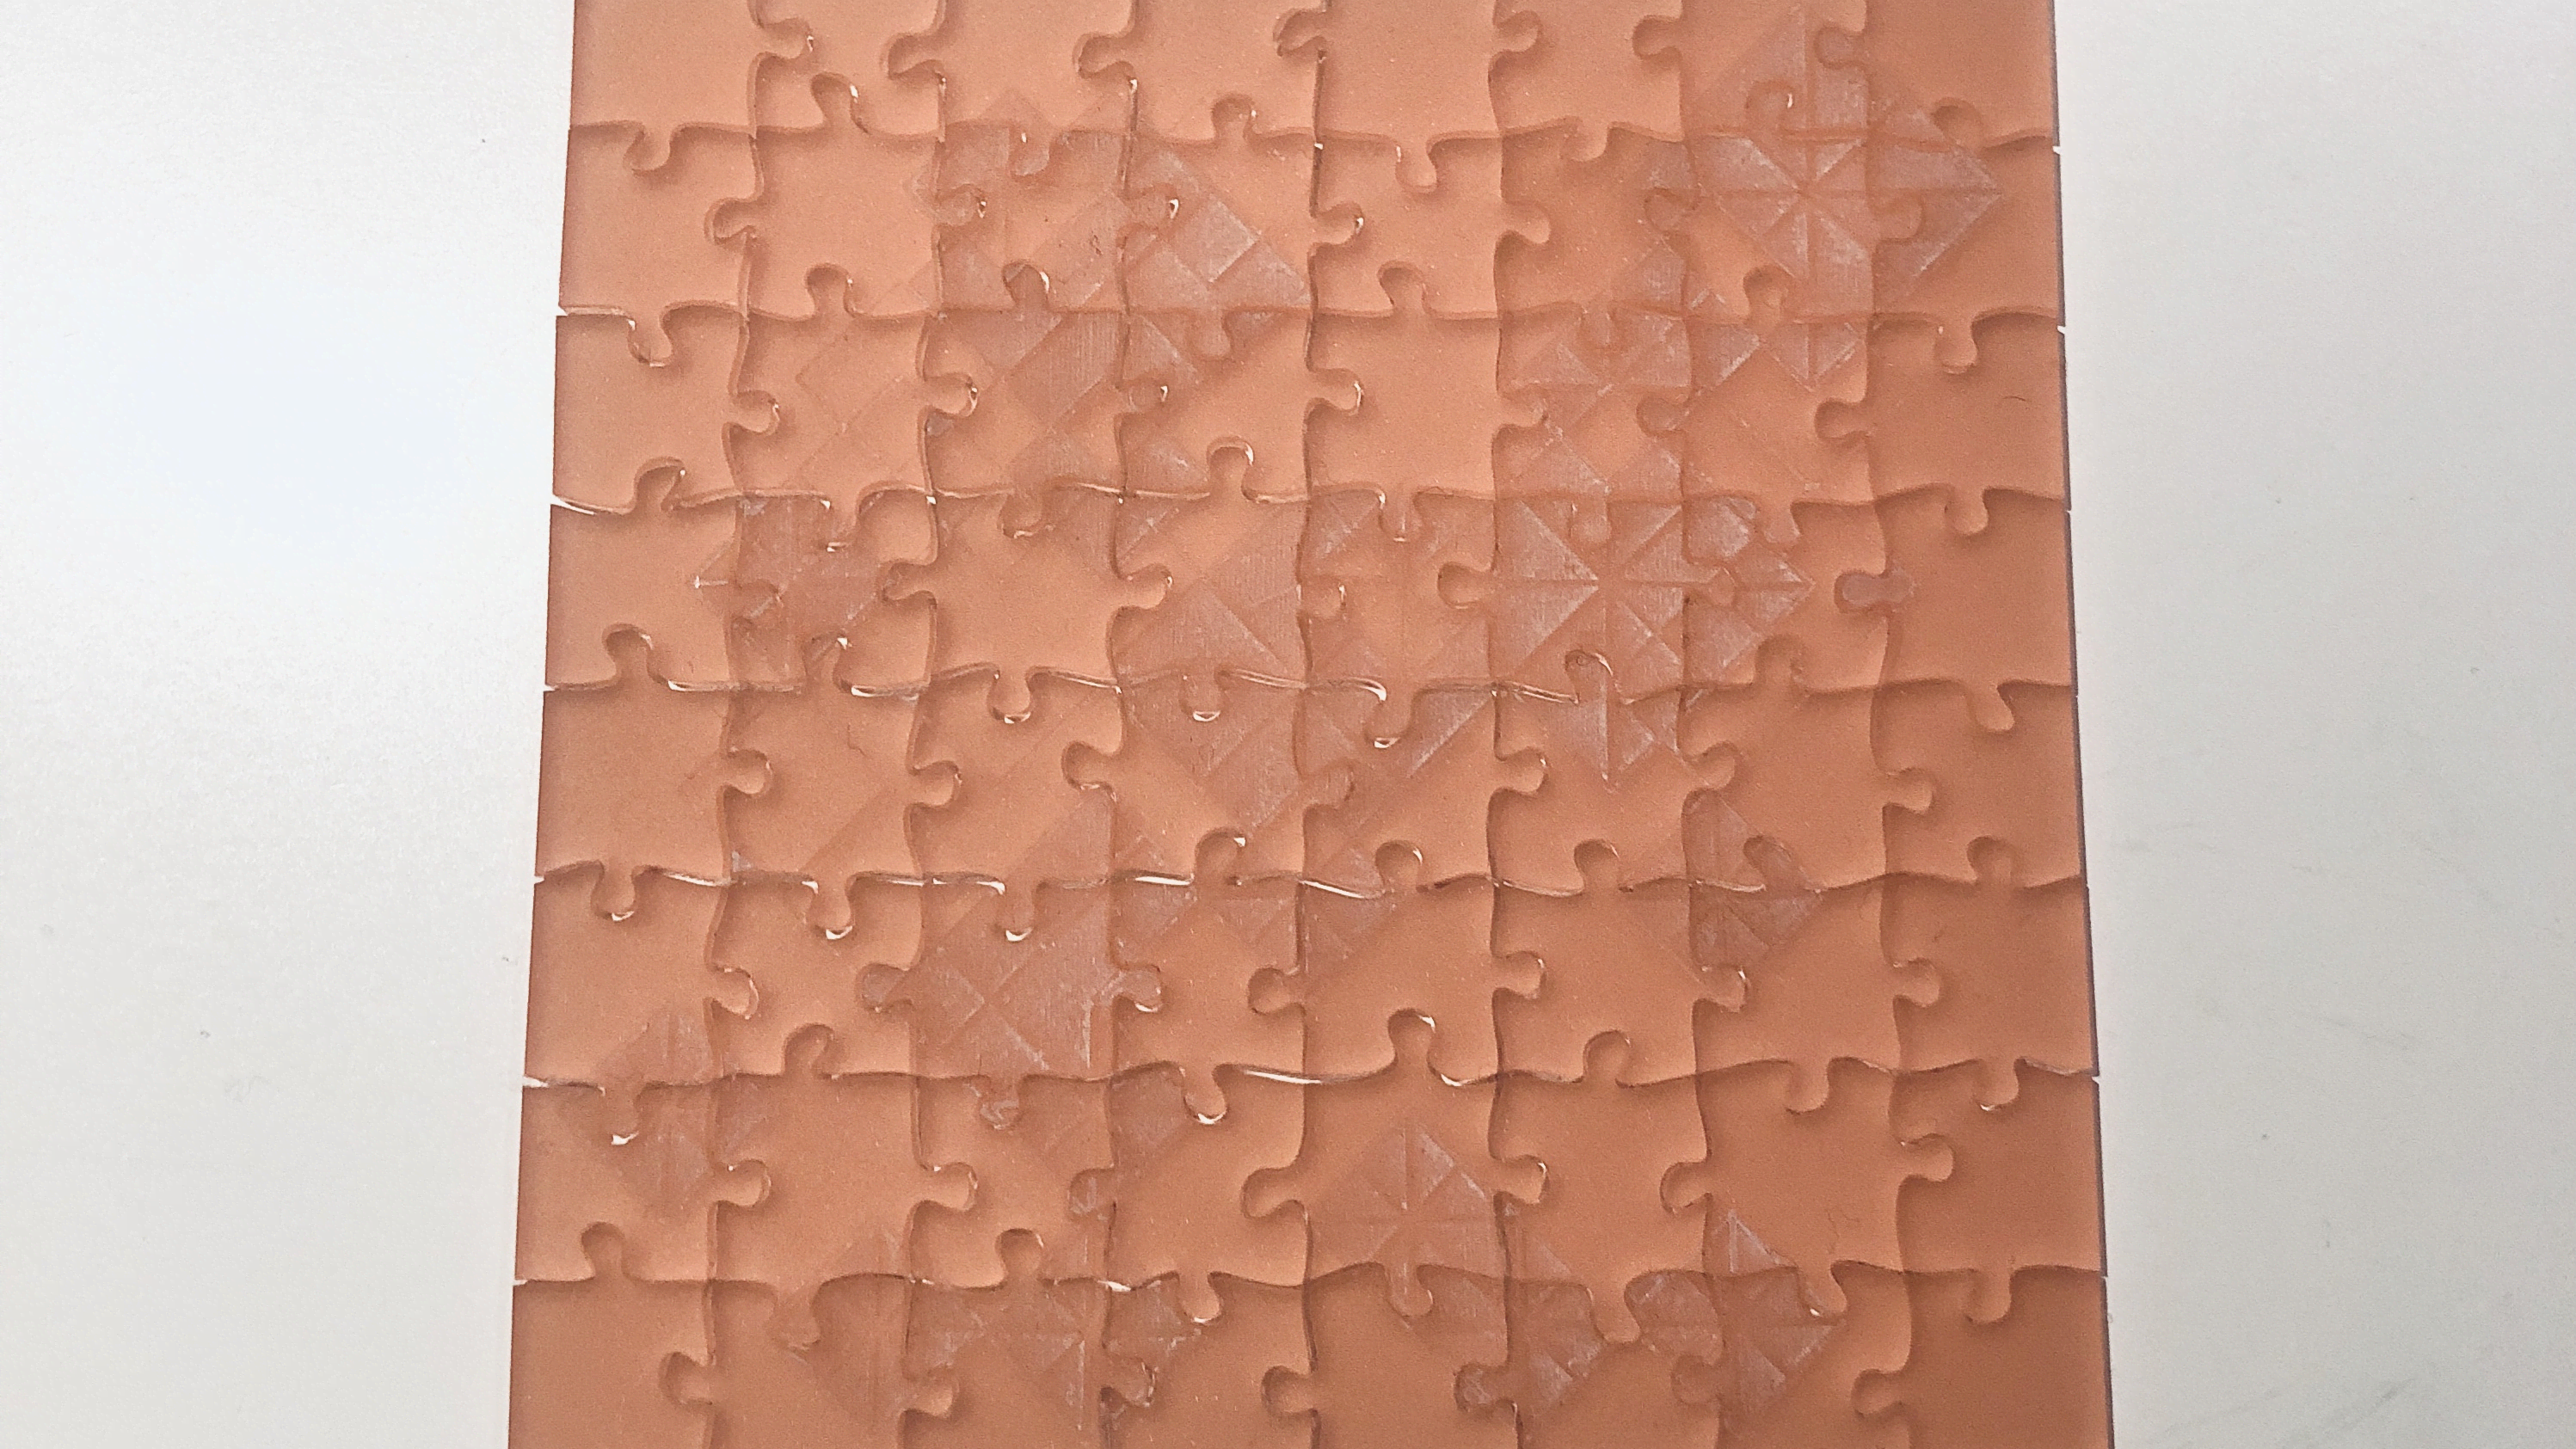 A photo of the perspex jigsaw completed